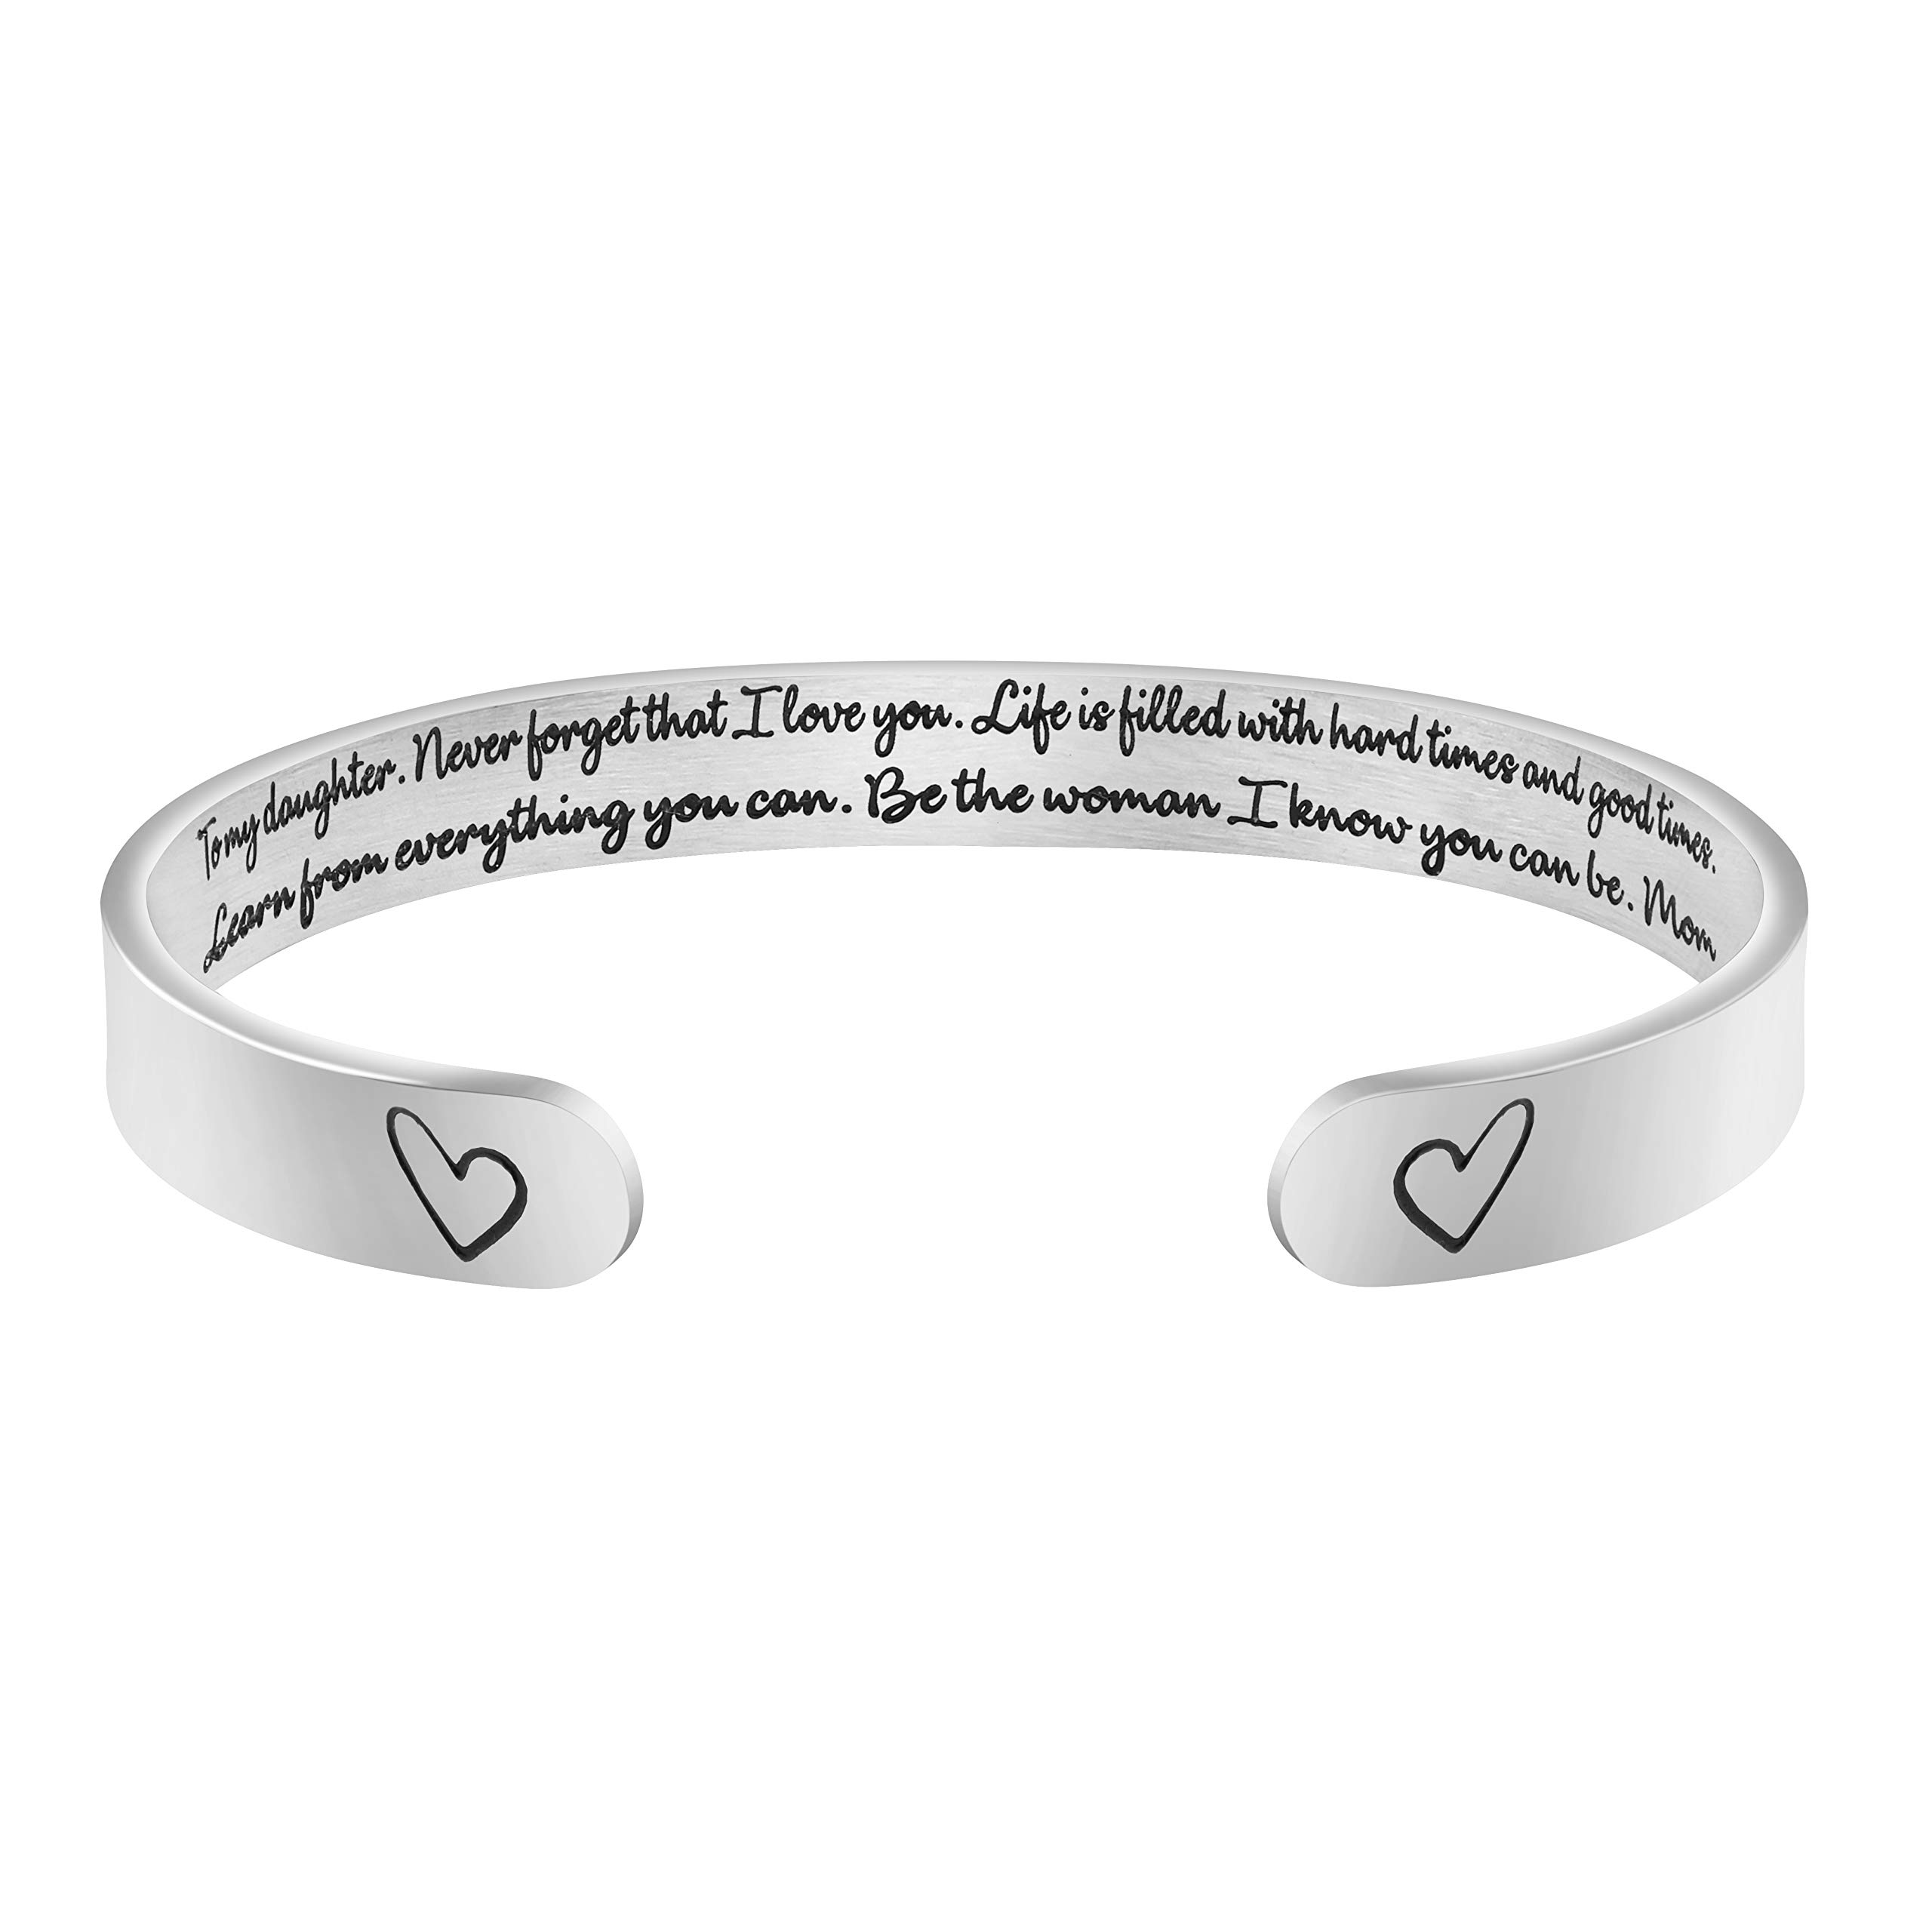 MEMGIFT Daughter Bracelets from Mom Wide Cuff Bangle Message Engraved for Her by MEMGIFT